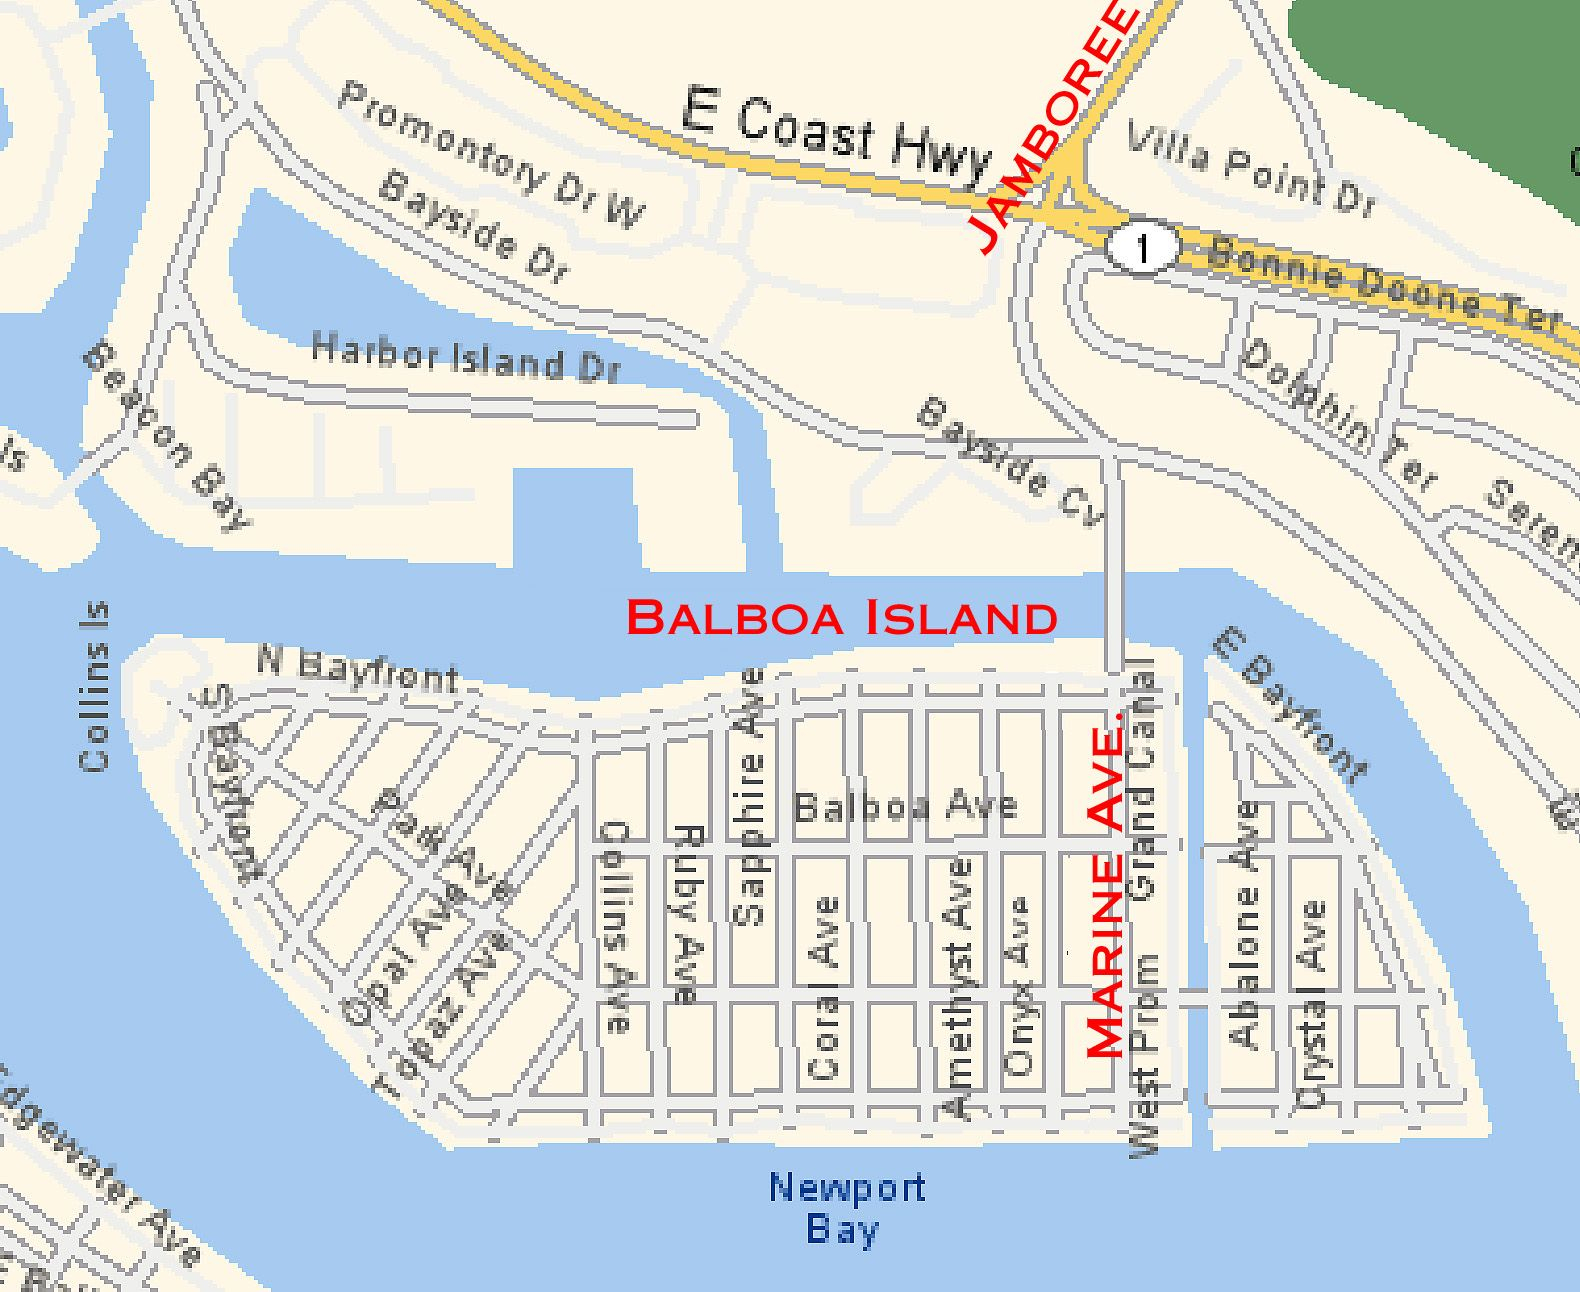 Map Of Balboa Island | Balboa Island And Misc Info | Pinterest - Newport California Map